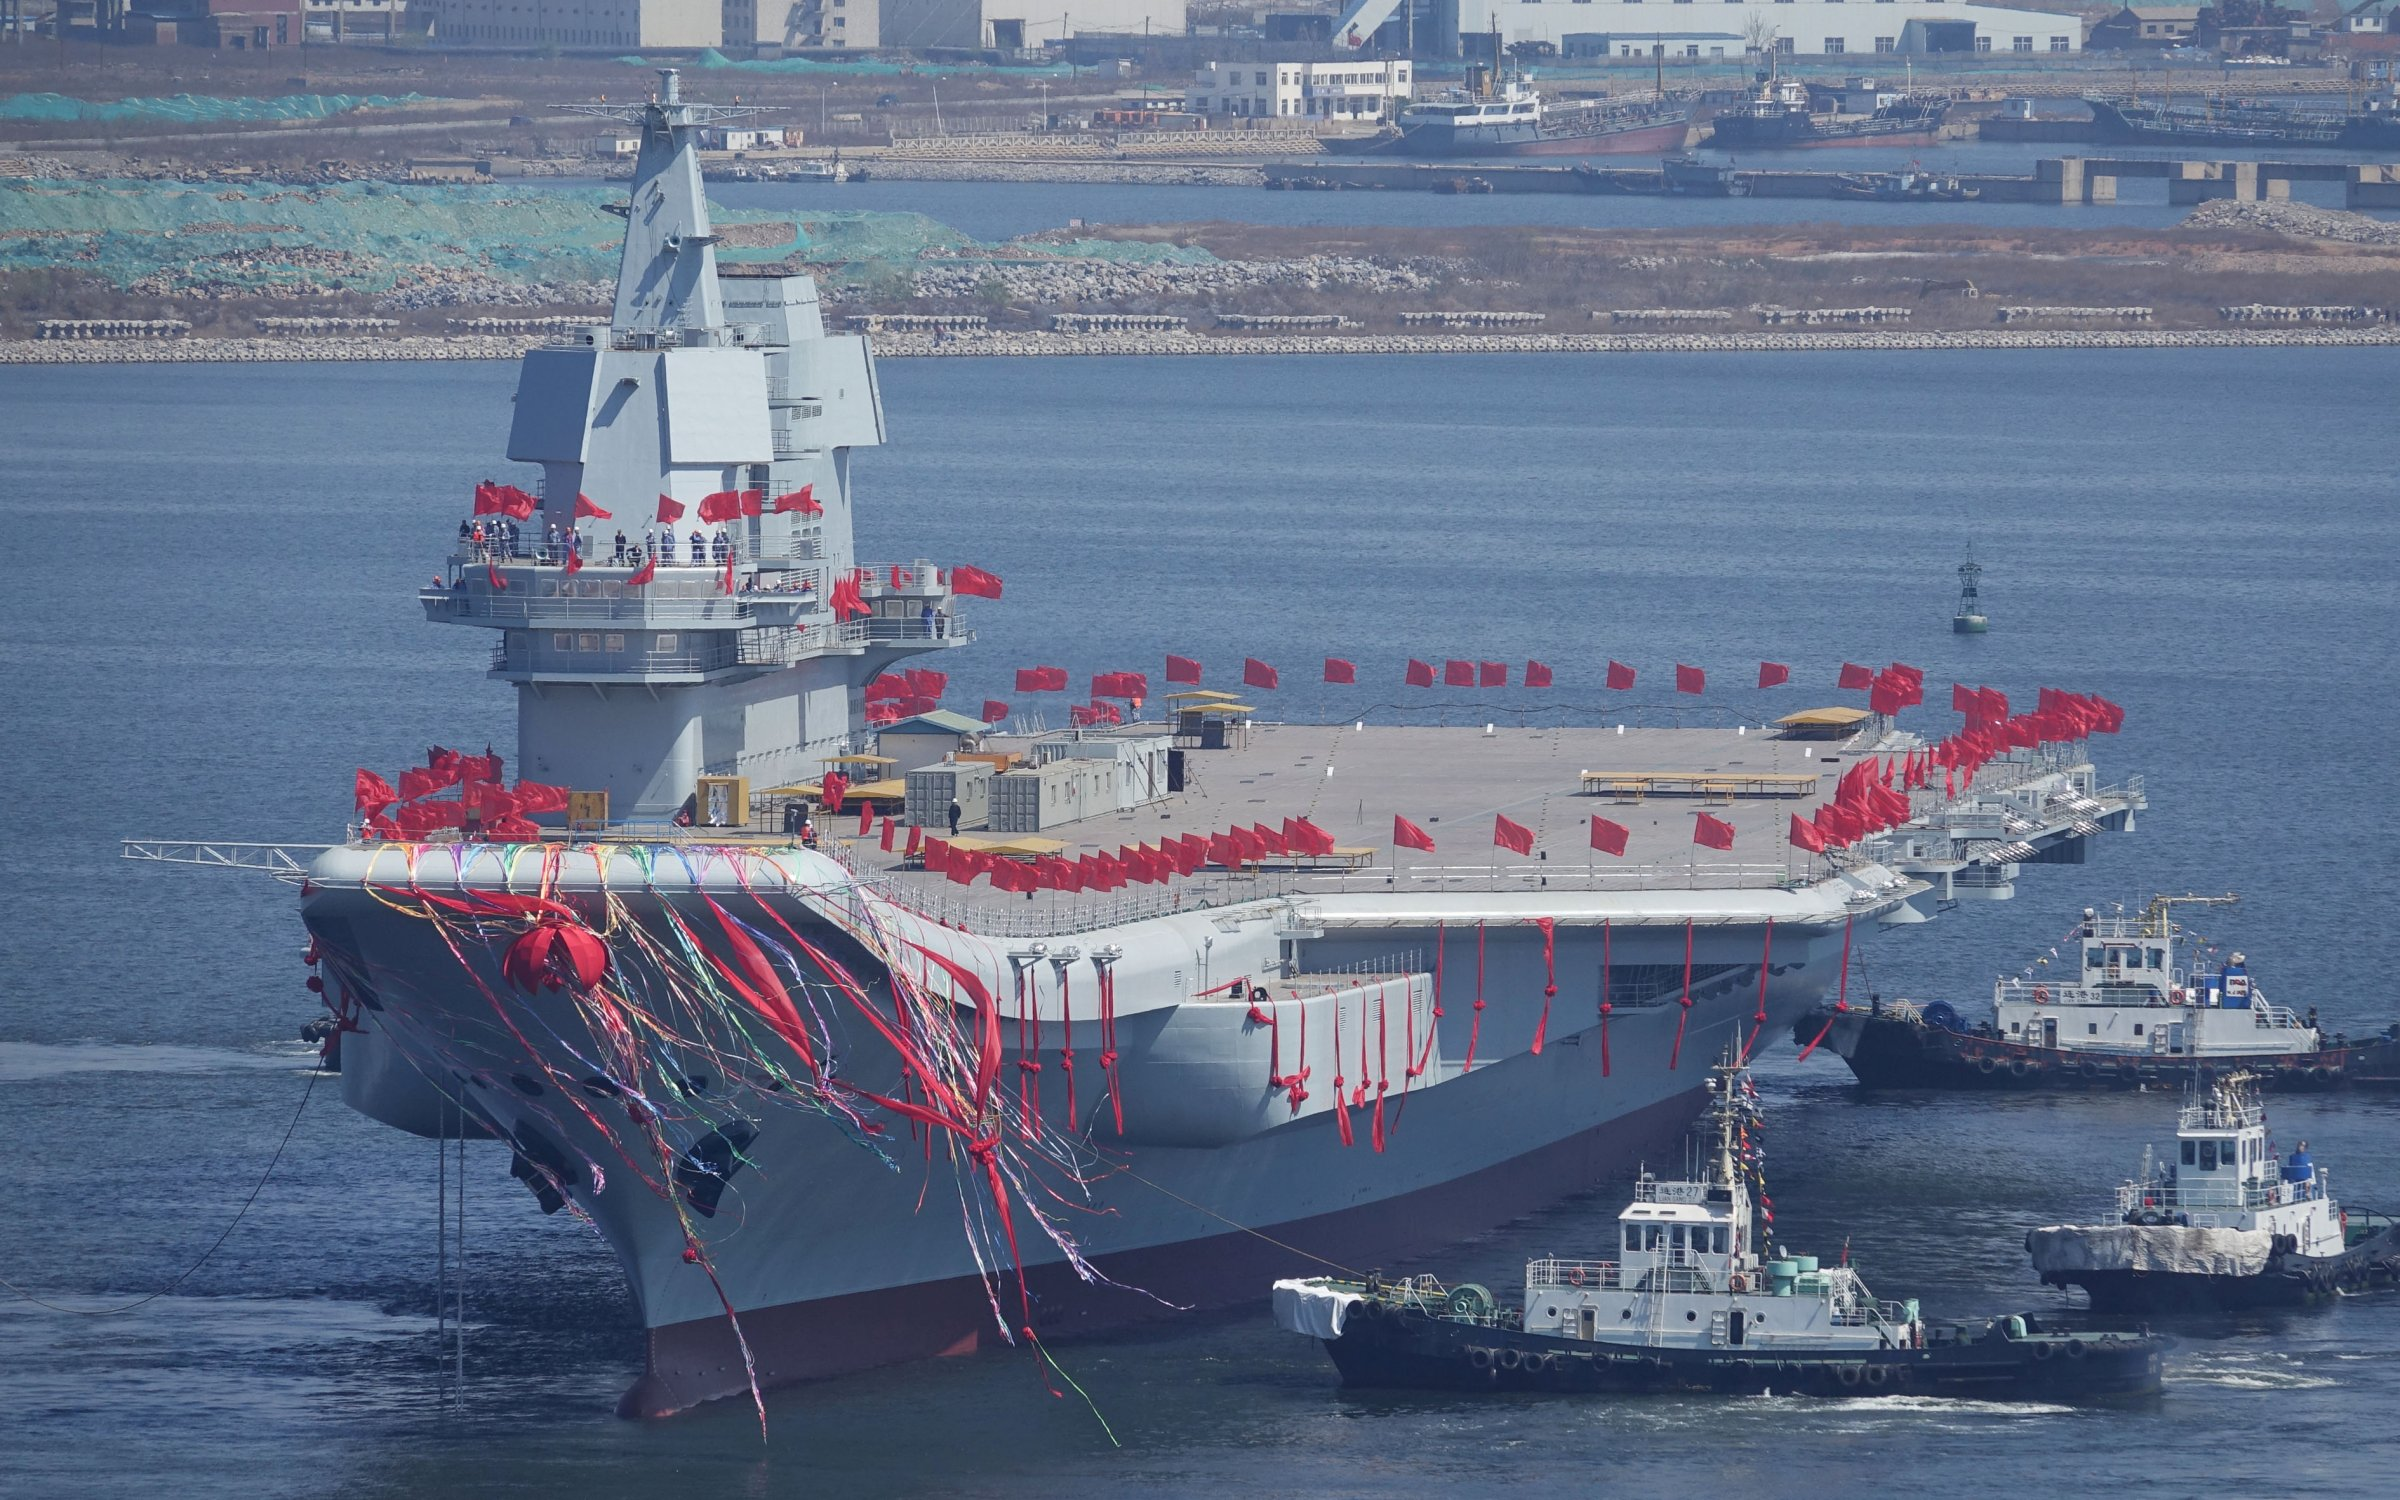 type 001A with flags